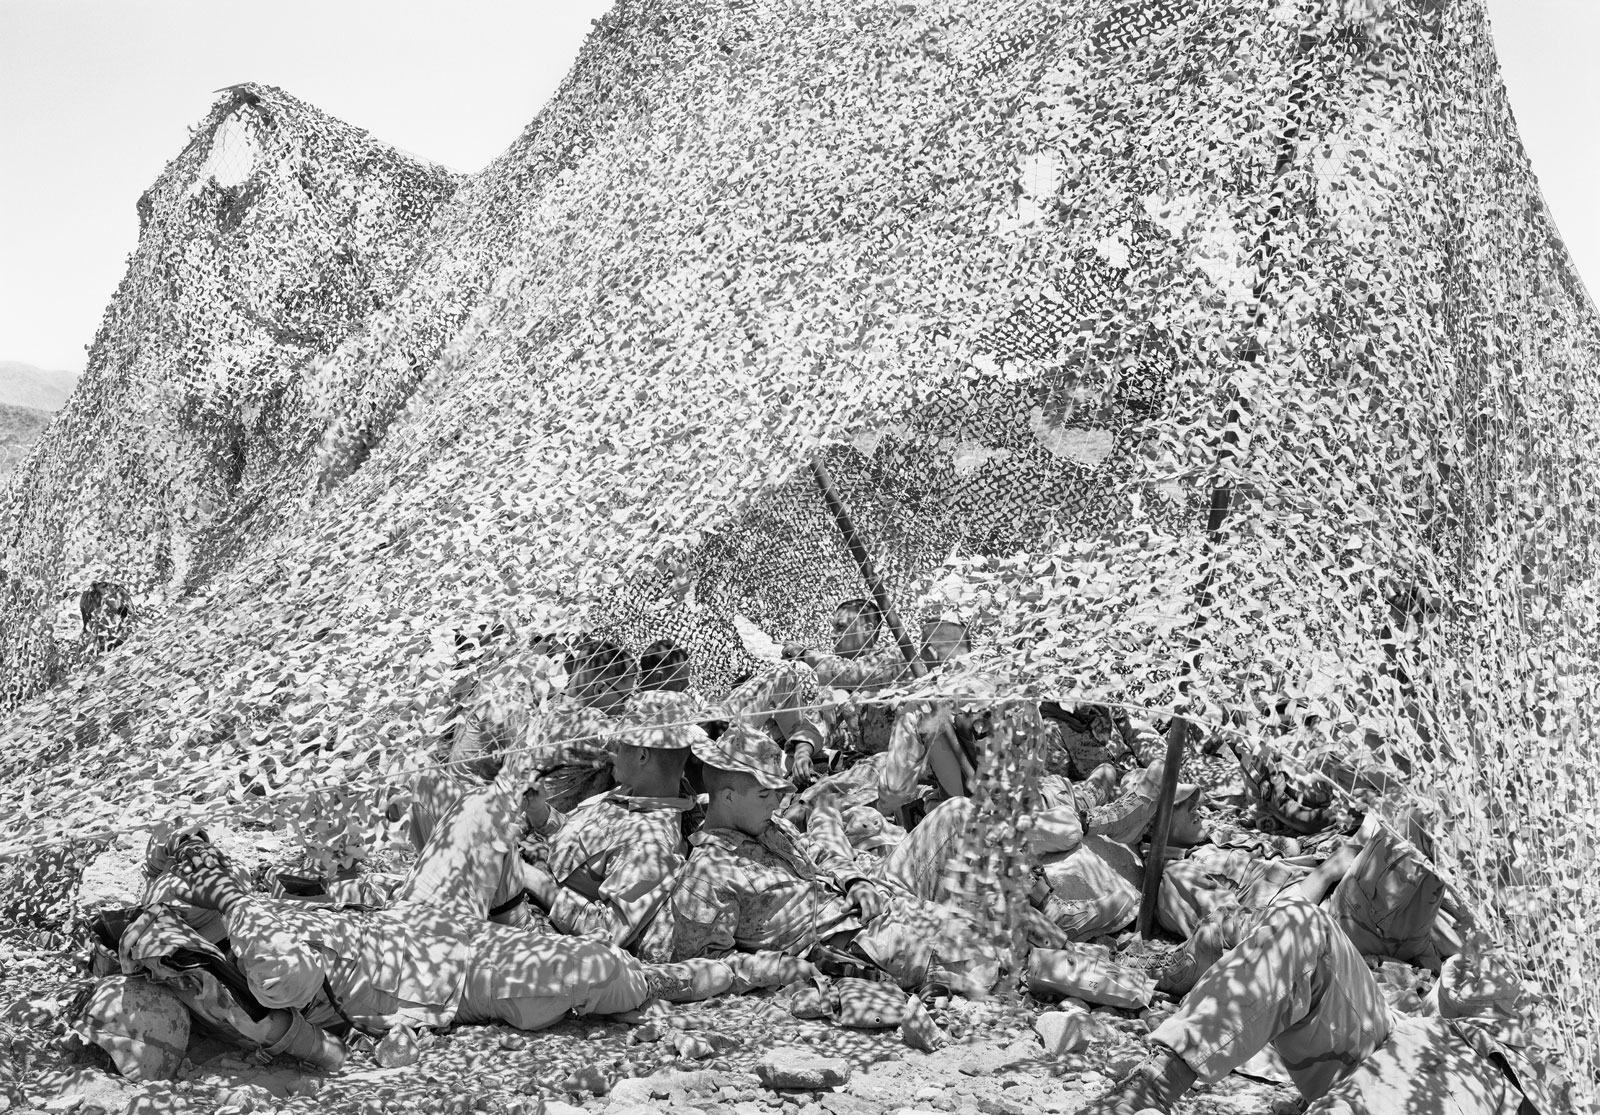 Soldiers crouched beneath camouflage